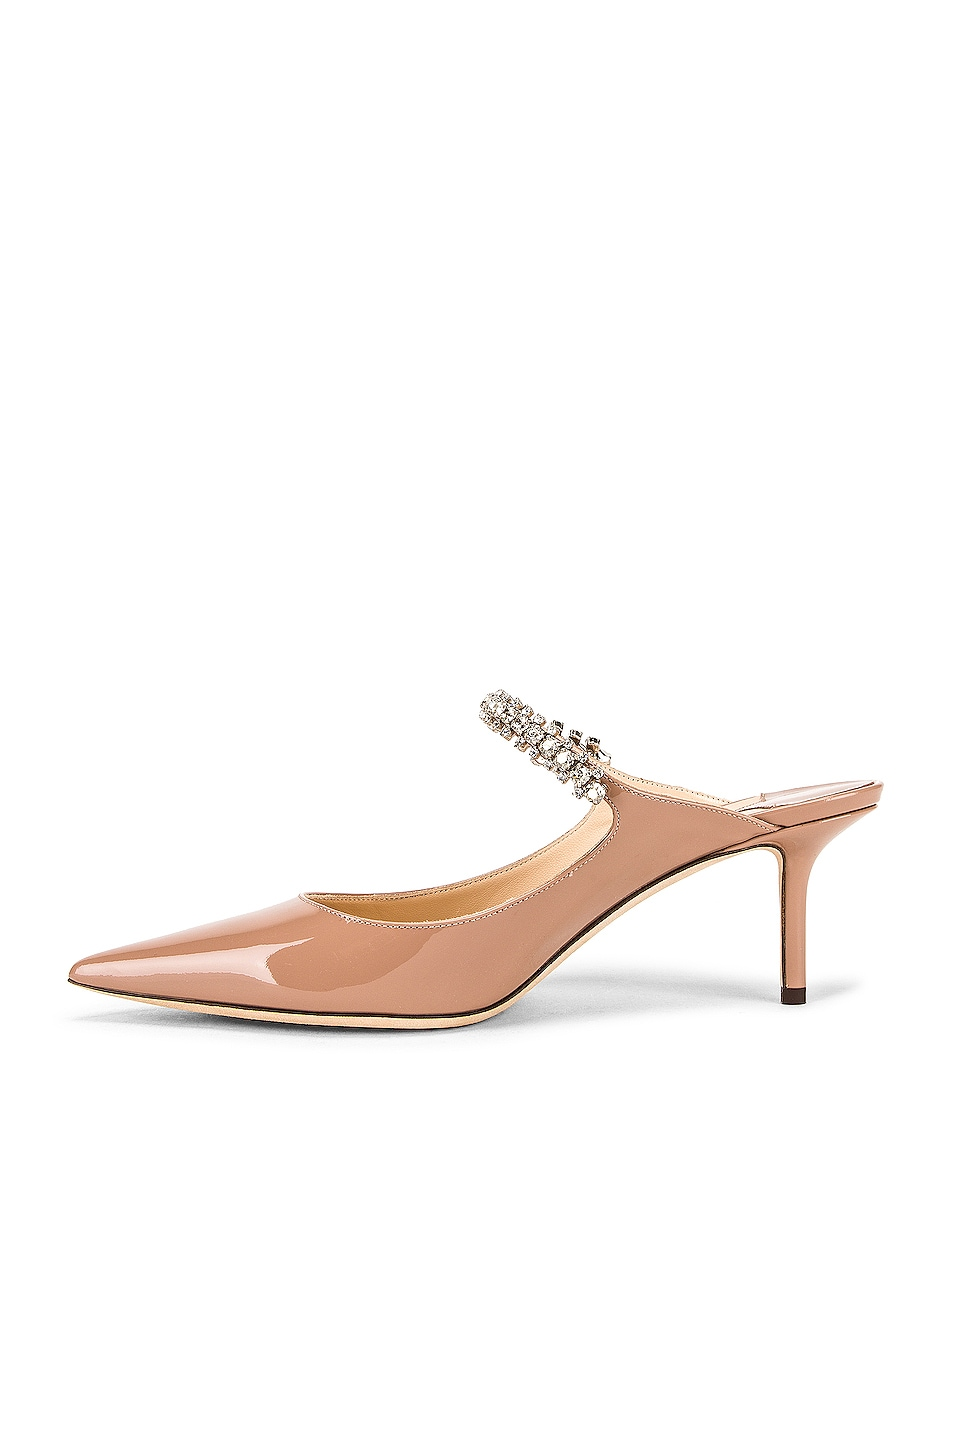 Image 5 of Jimmy Choo Patent Leather Bing 65 Heel in Ballet Pink